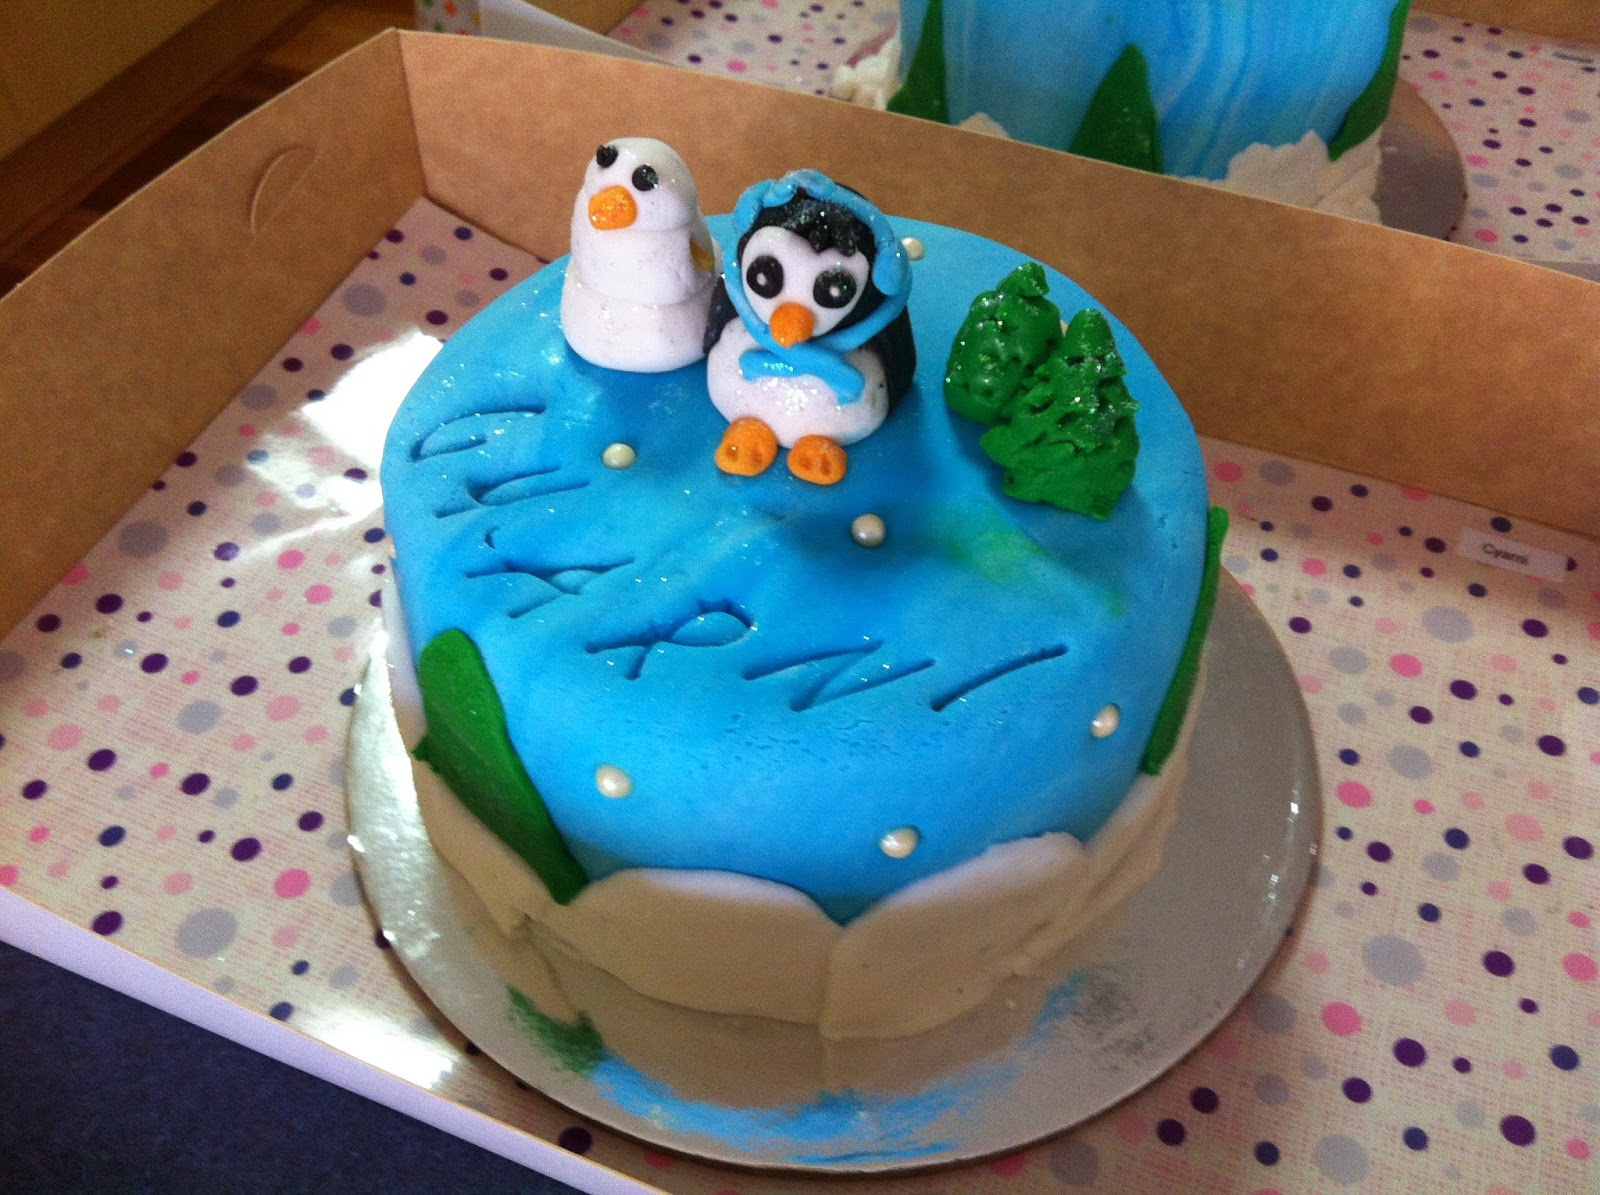 Cake Decorating Classes For 11 Year Olds : Elegant Cakes and Party Dates: Making Penguin mini cakes ...